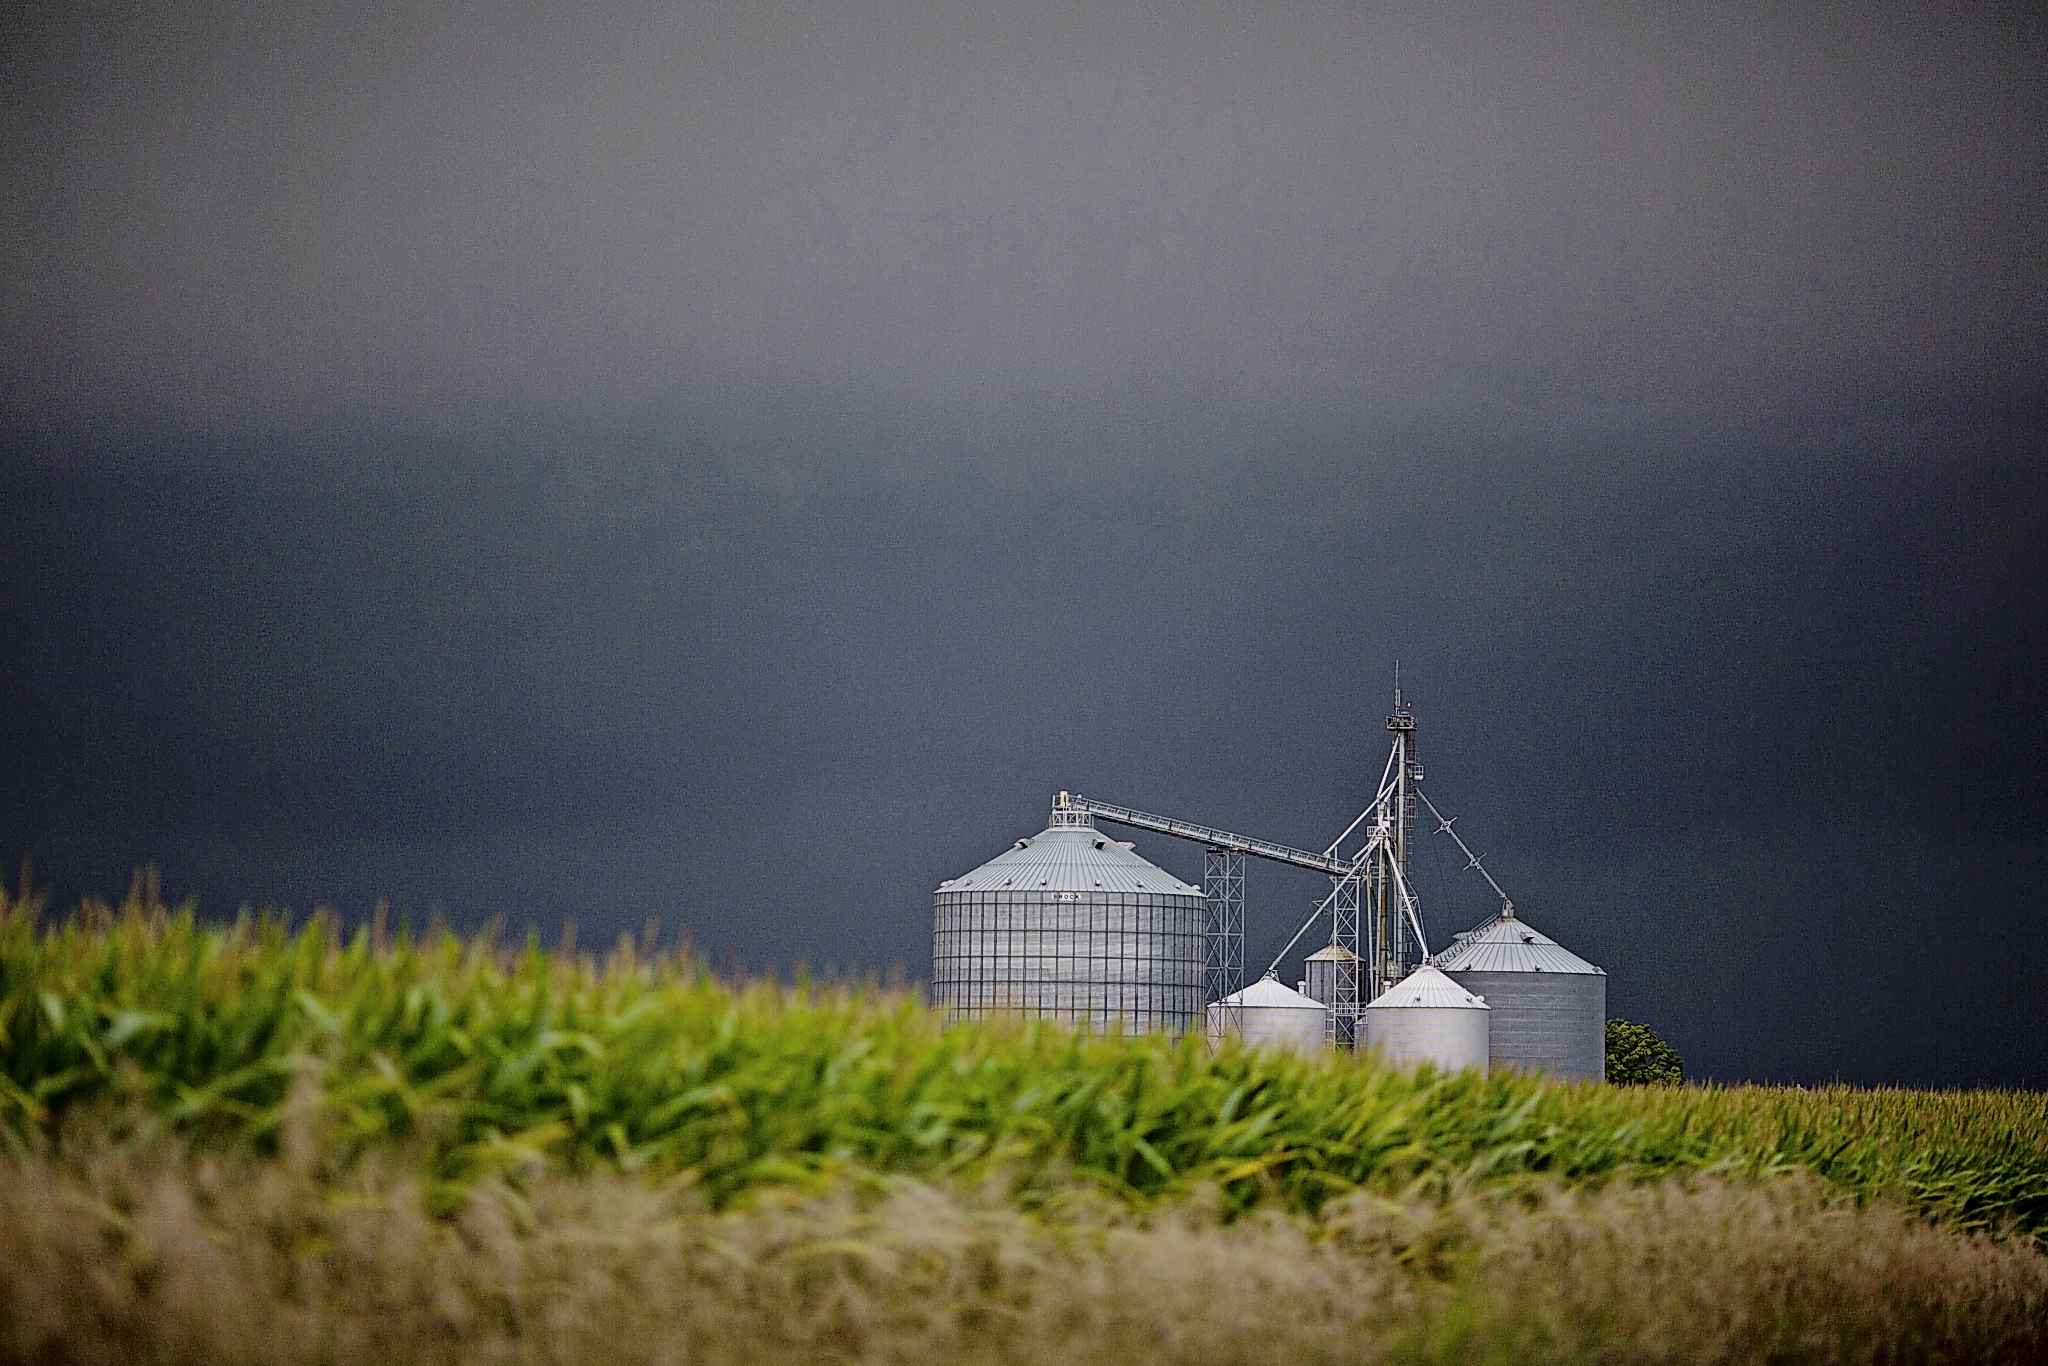 Statistics Canada reports net farm income fell by more than half, from $8.1 billion in 2017 to $3.9 billion in 2018. (Daniel Acker / Bloomberg files)